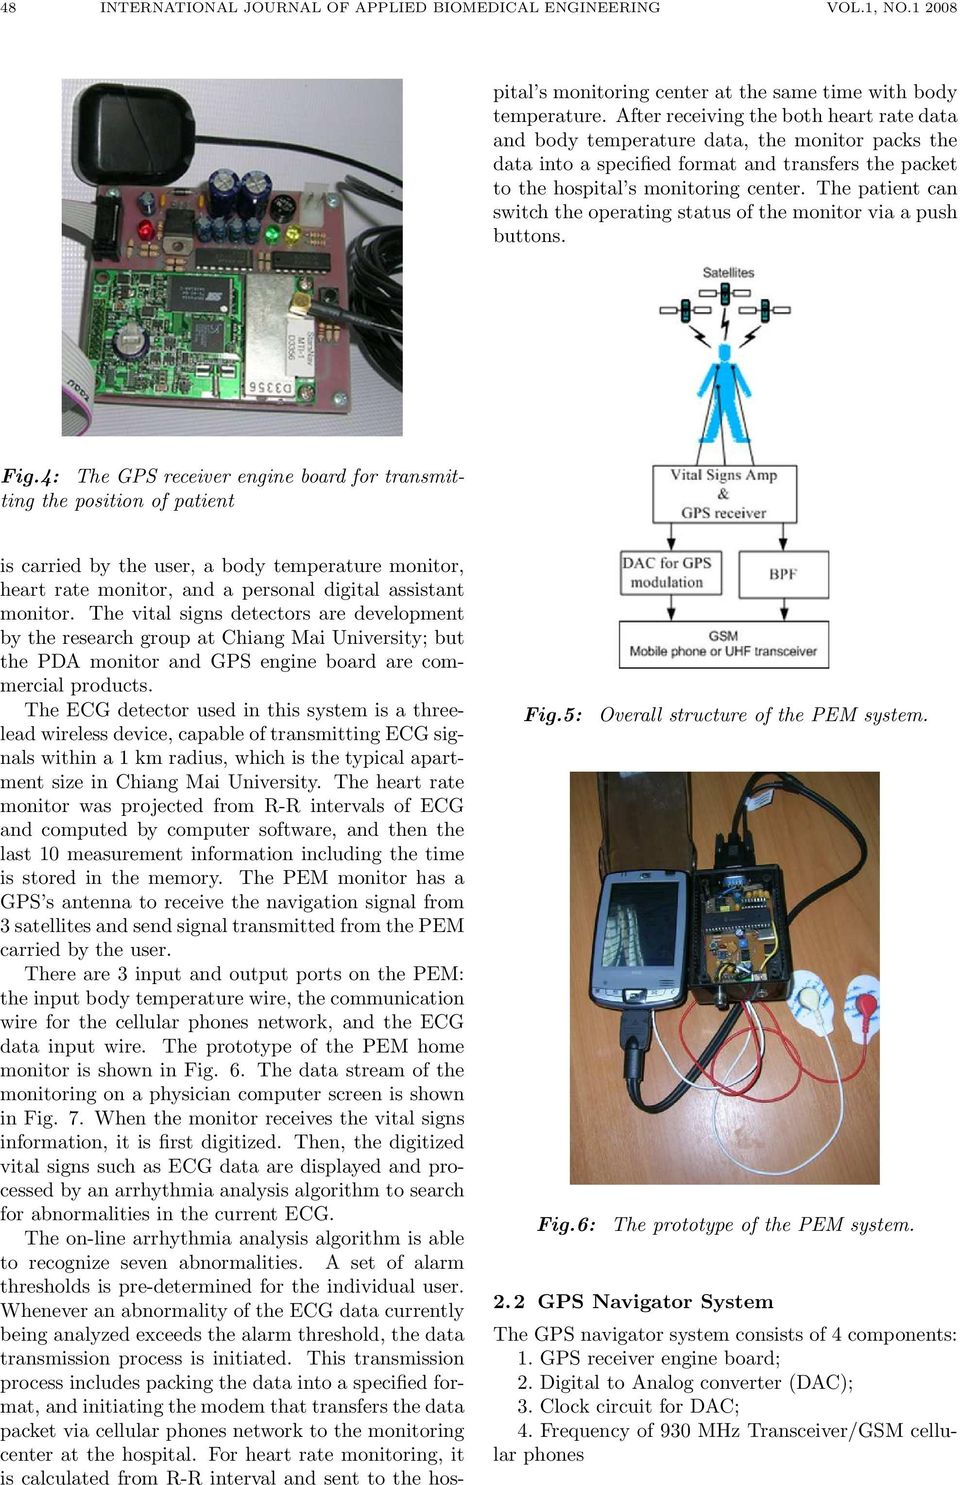 The ECG detector used in this system is a threelead wireless device, capable of transmitting ECG signals within a 1 km radius, which is the typical apartment size in Chiang Mai University.